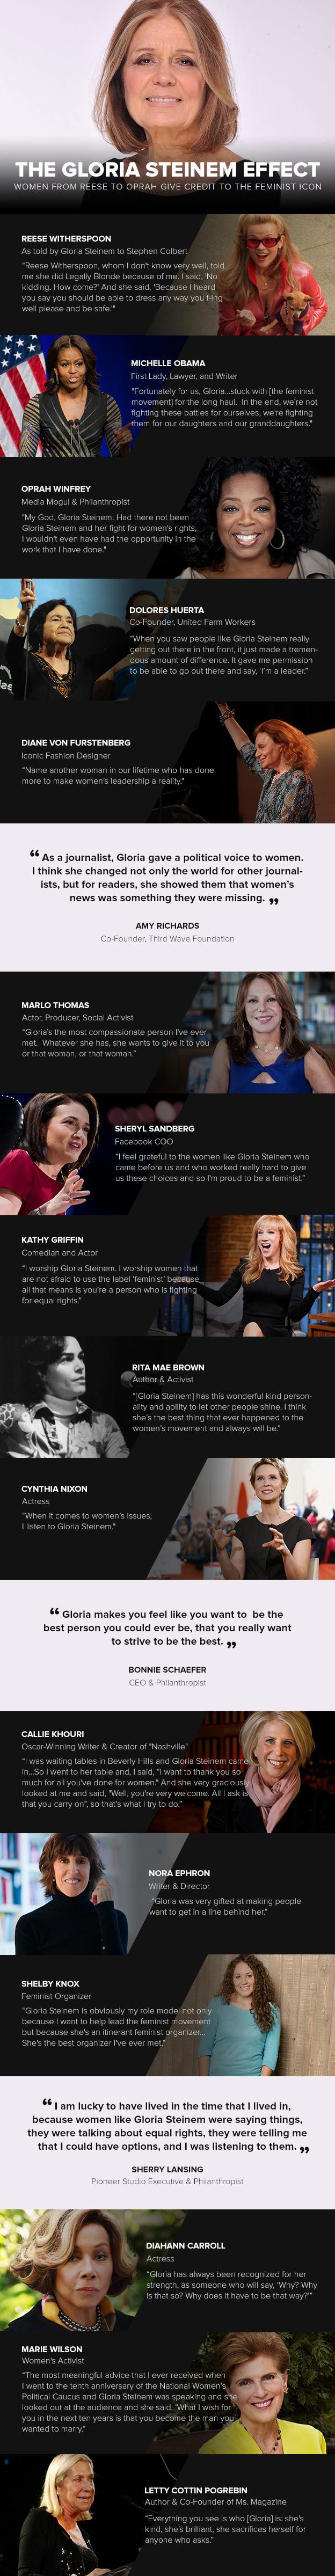 19 Powerful Women on 'The Gloria Steinem Effect'